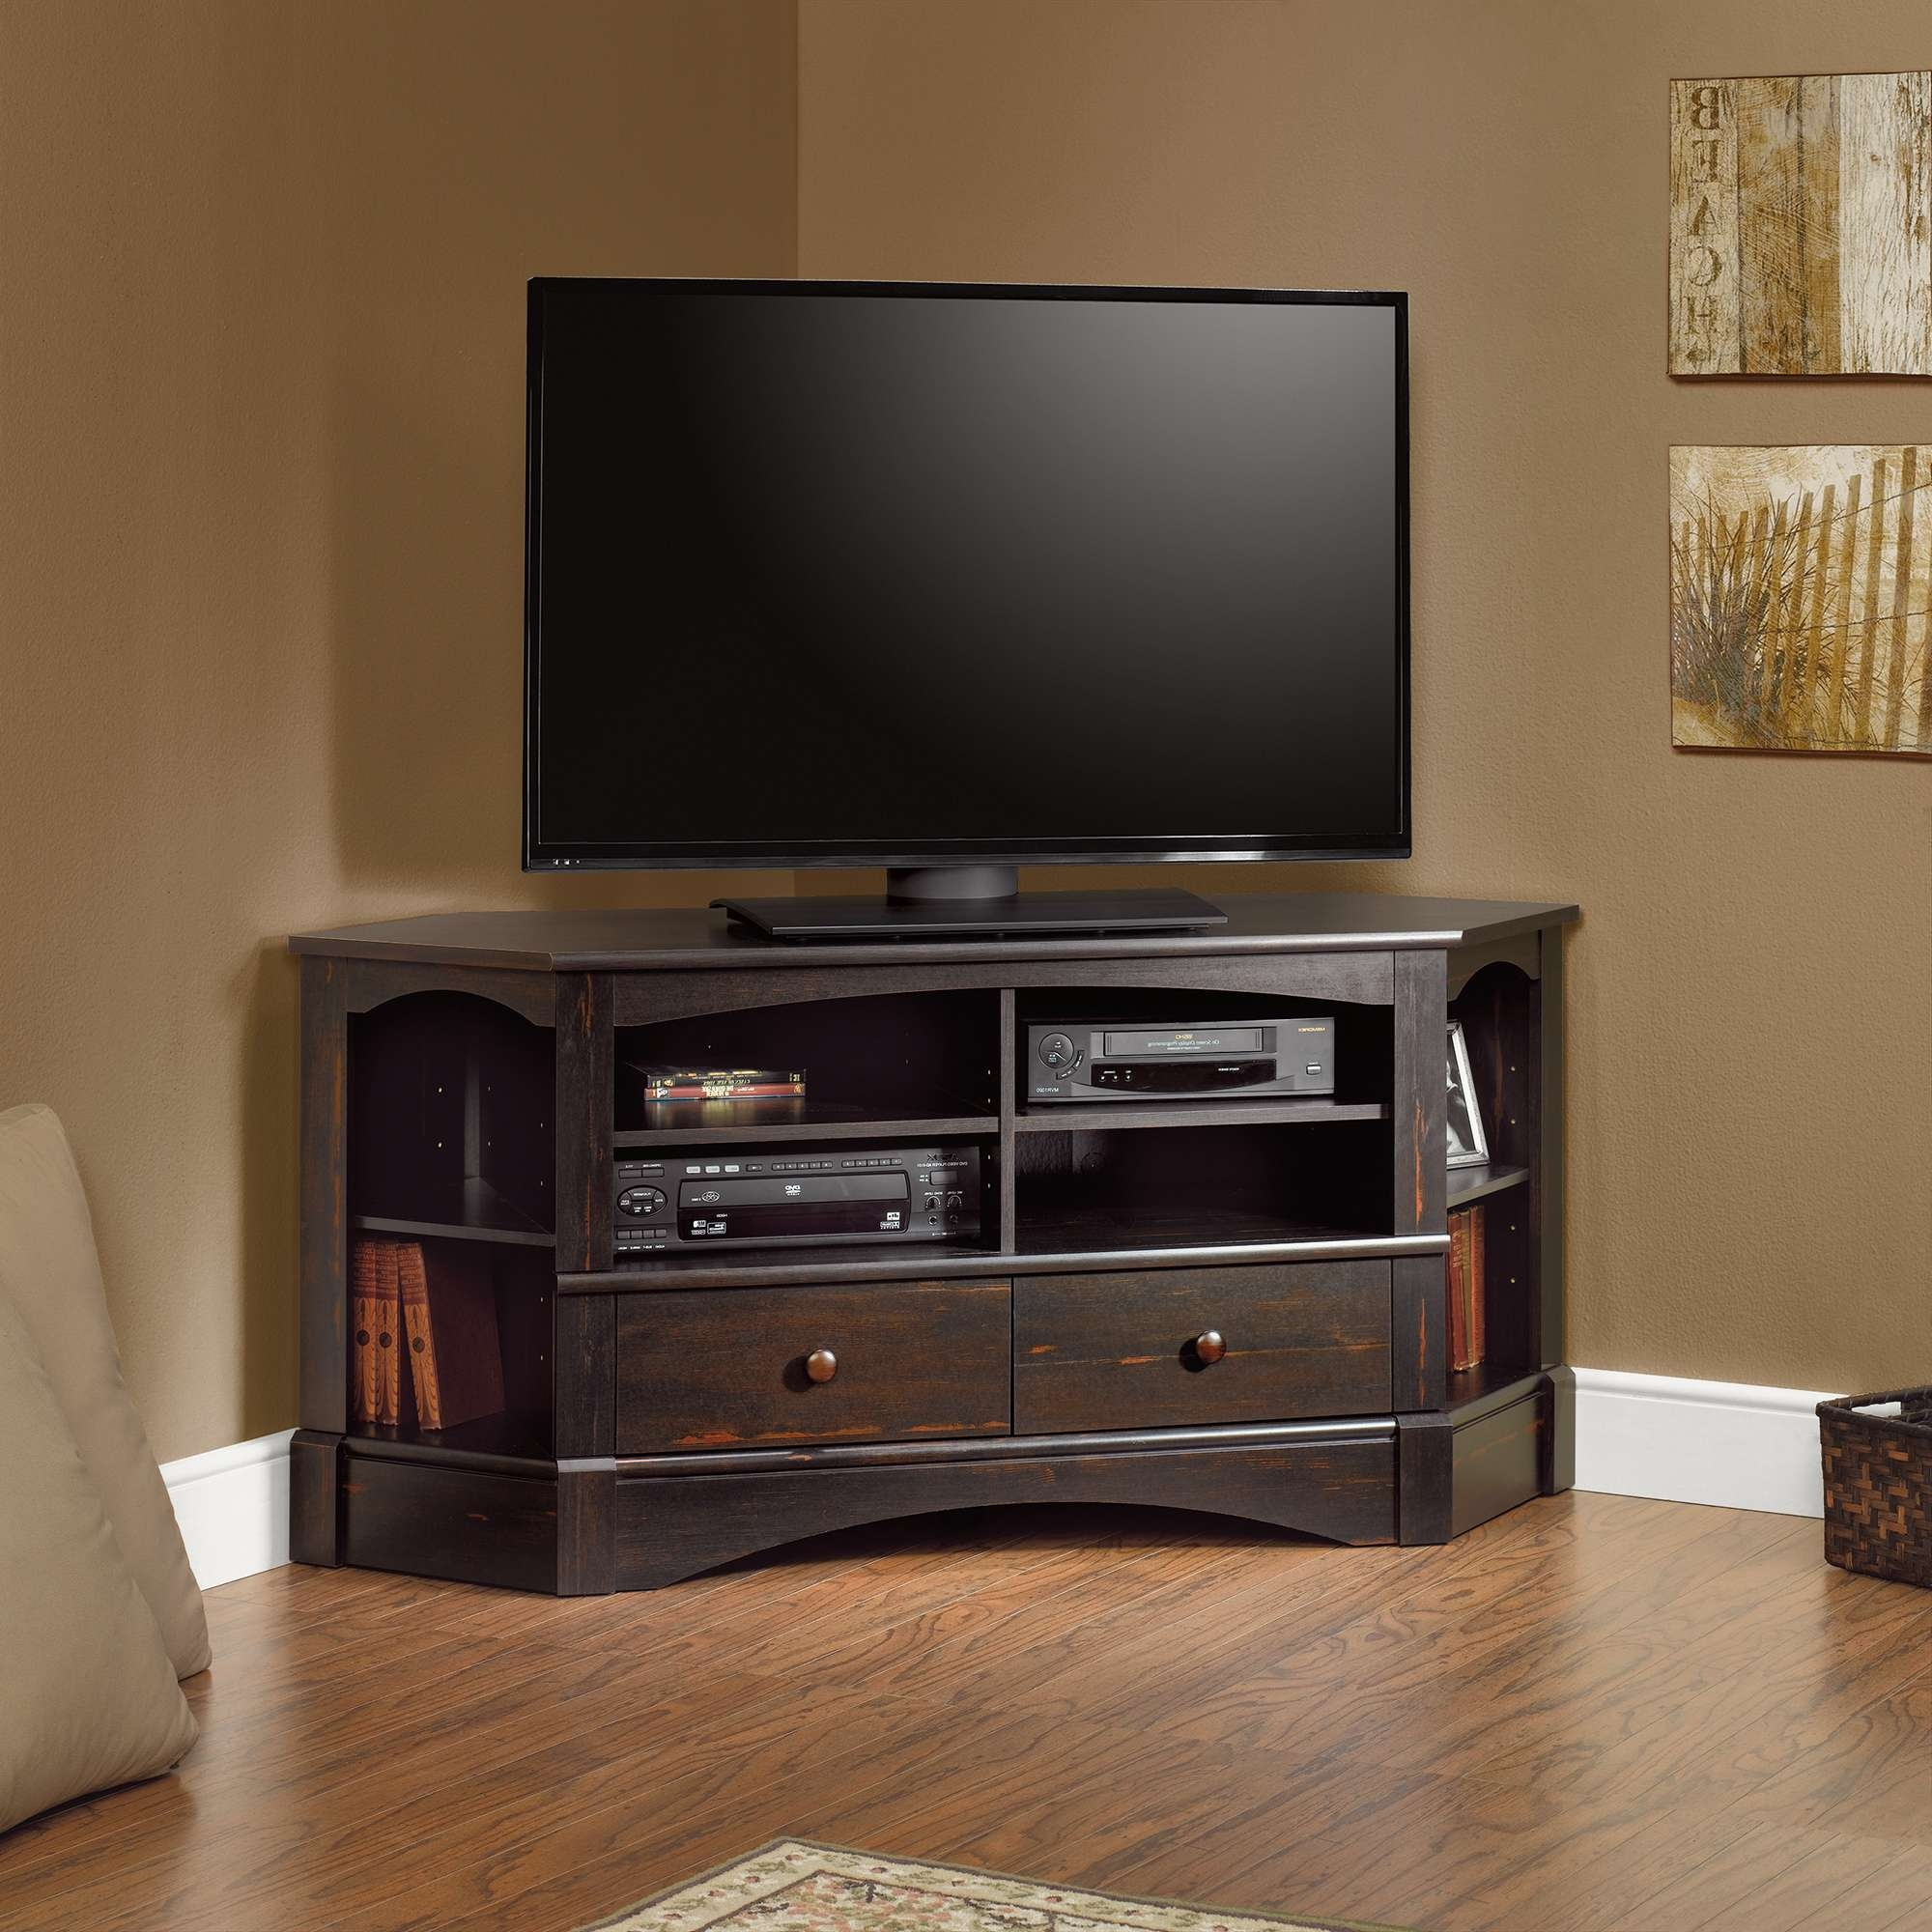 Fancy Matte Varnished Dark Oak Wood Tall Corner Tv Stand For Pertaining To Fancy Tv Cabinets (View 4 of 20)